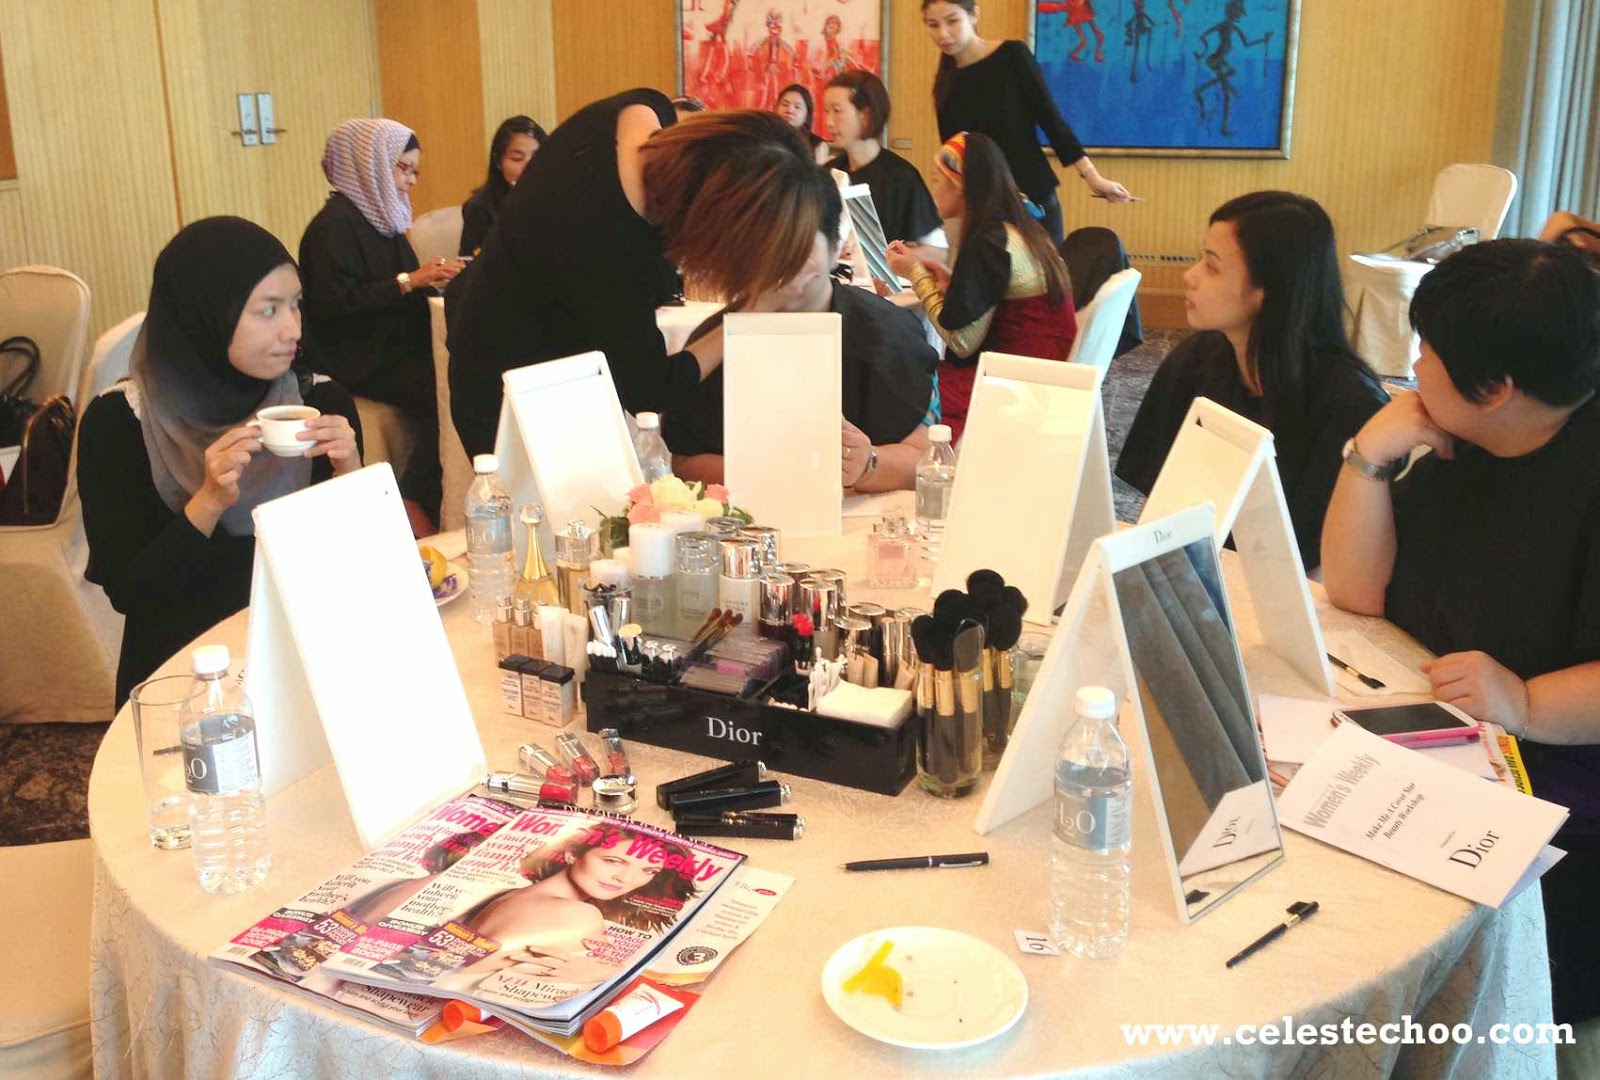 dior_beauty_makeup_workshop_guests_applying_makeup